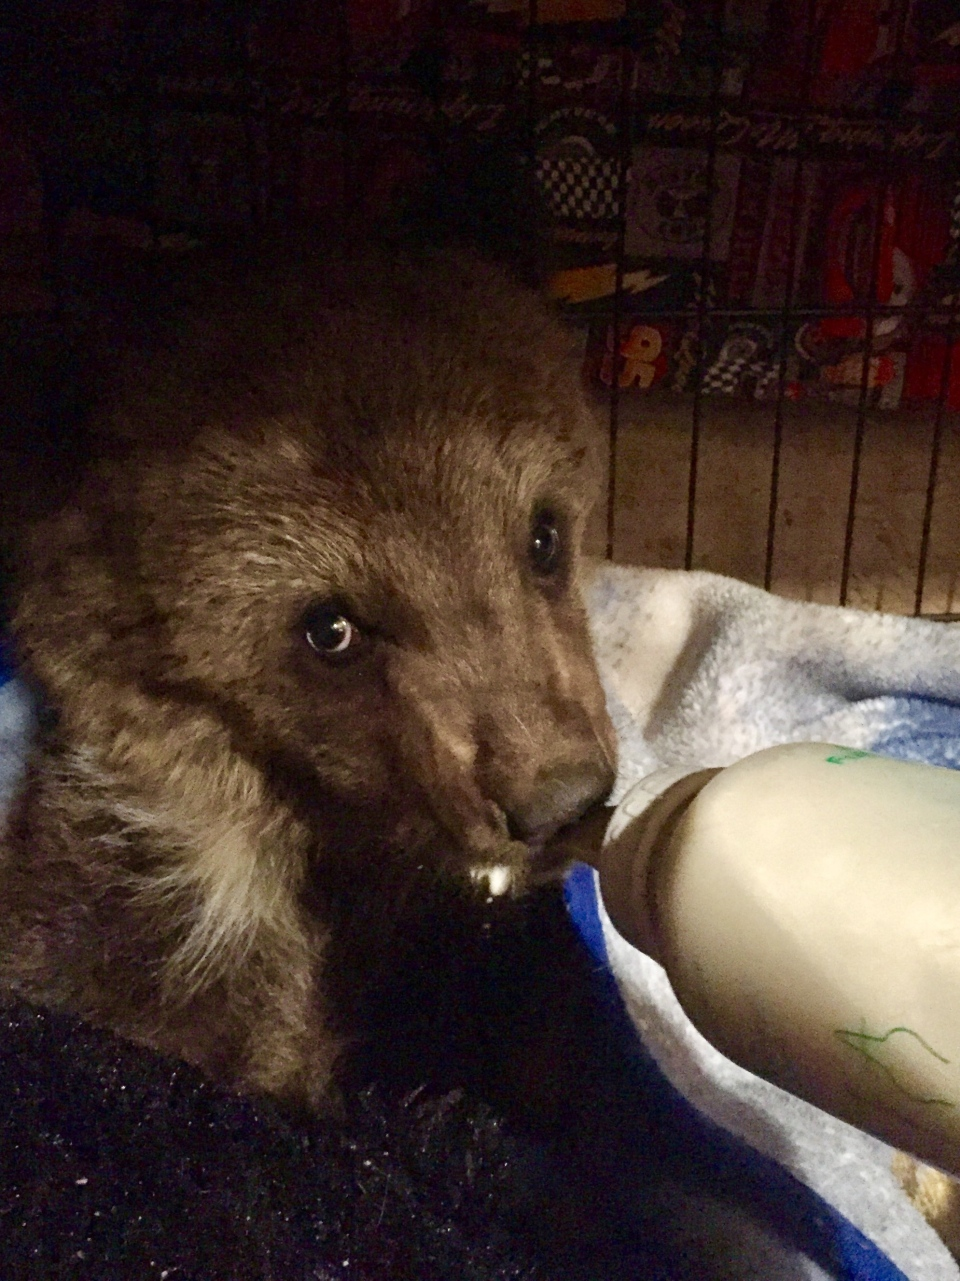 Two women rescued a grizzly bear cub near Grande Cache this week after watching it for five days to see if its mother would return for it. (THE CANADIAN PRESS/HO, Kyla Woollard)